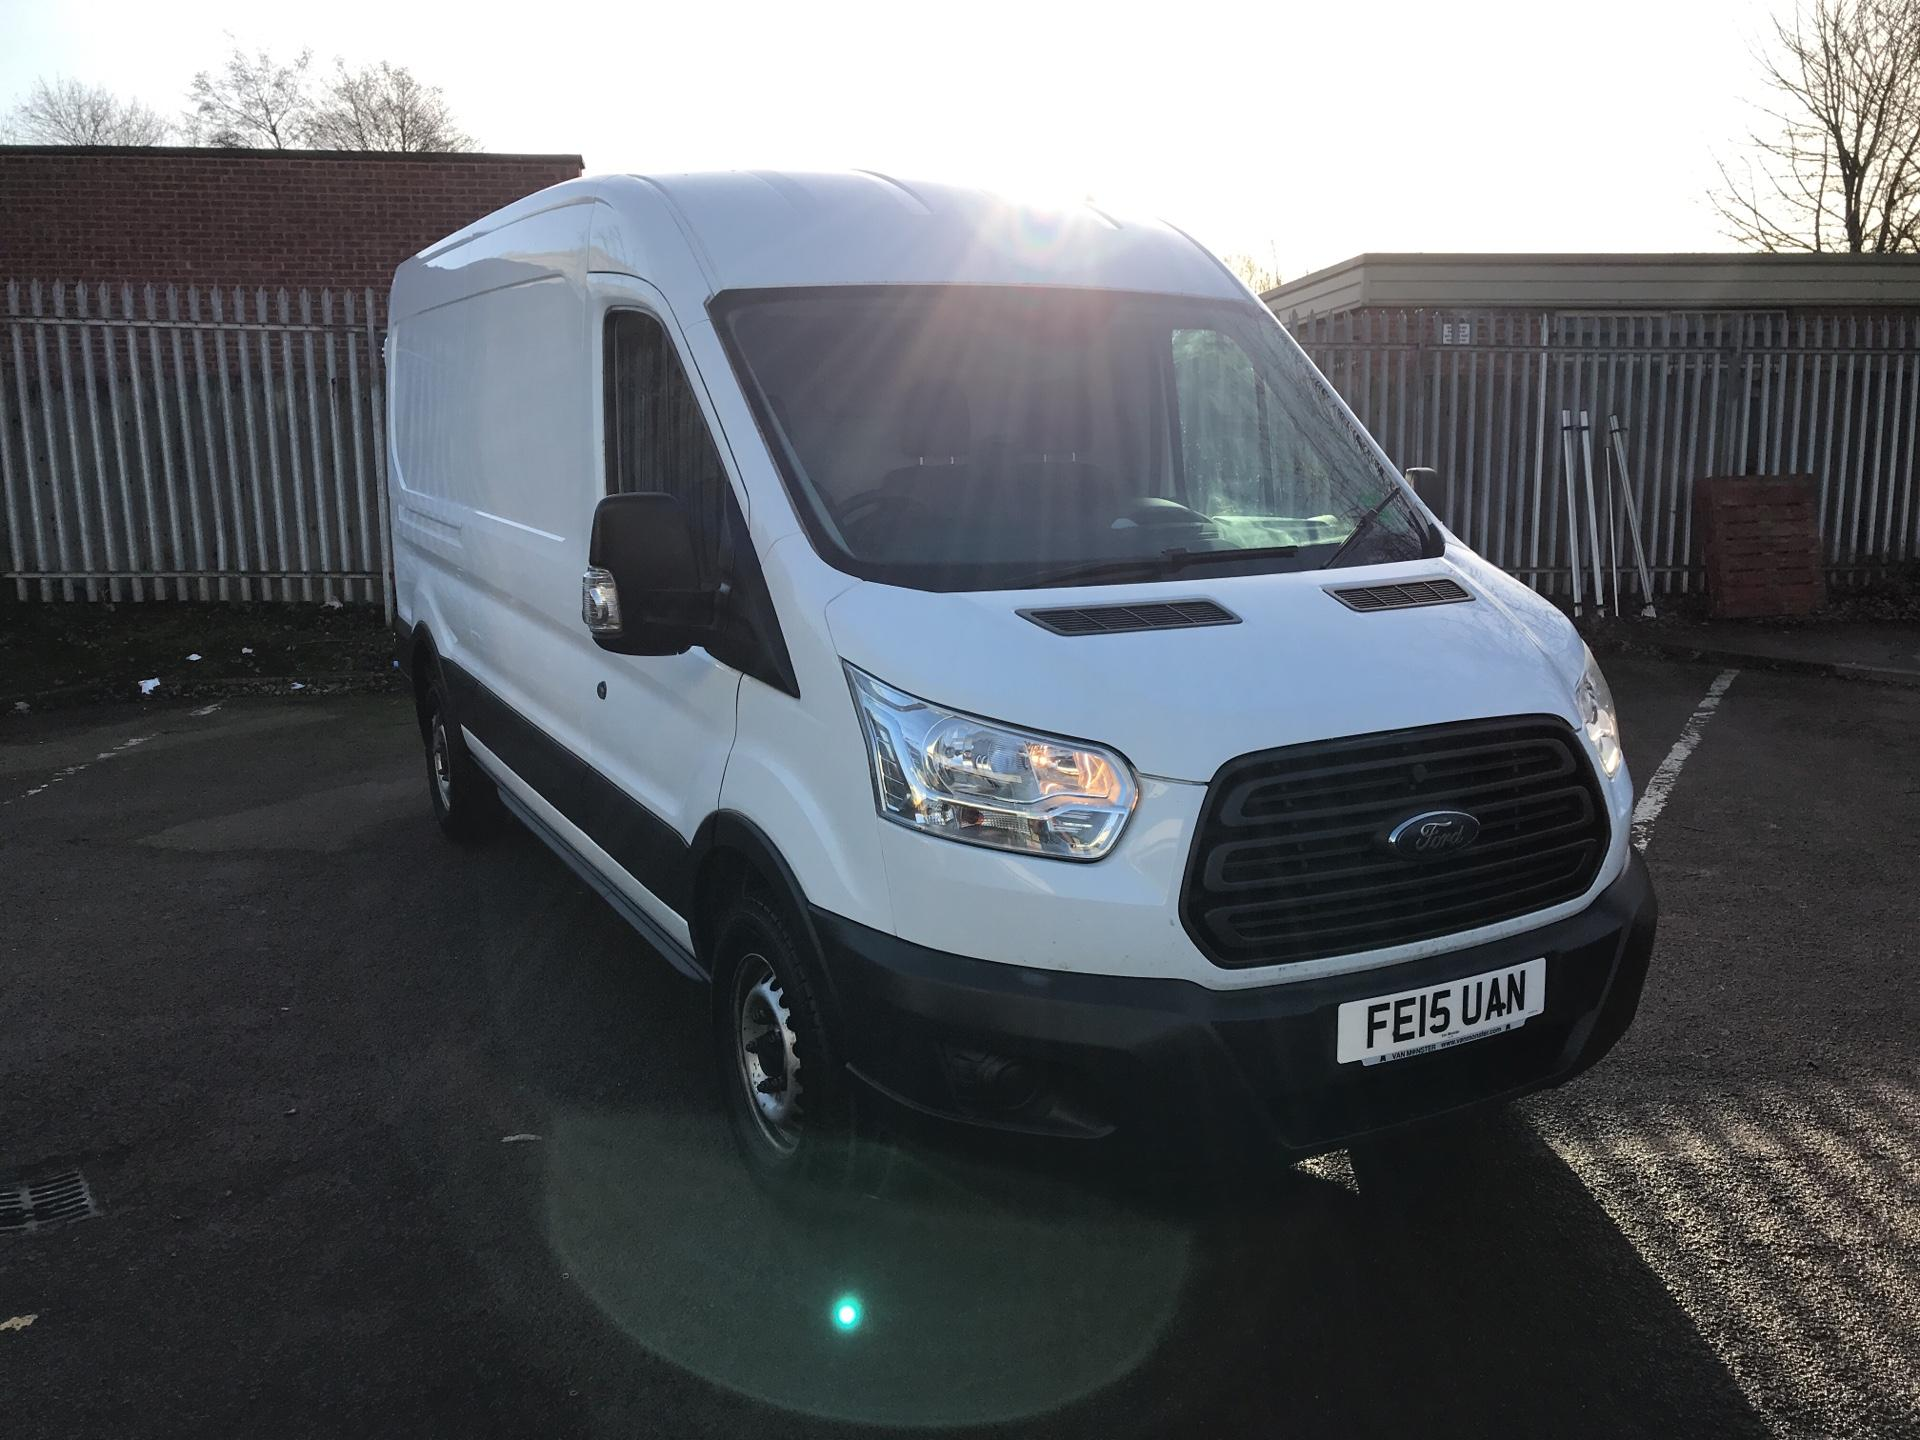 2015 Ford Transit 350 L3 H2 VAN 125PS EURO 5 *VALUE RANGE VEHICLE - CONDITION REFLECTED IN PRICE* (FE15UAN) Image 1